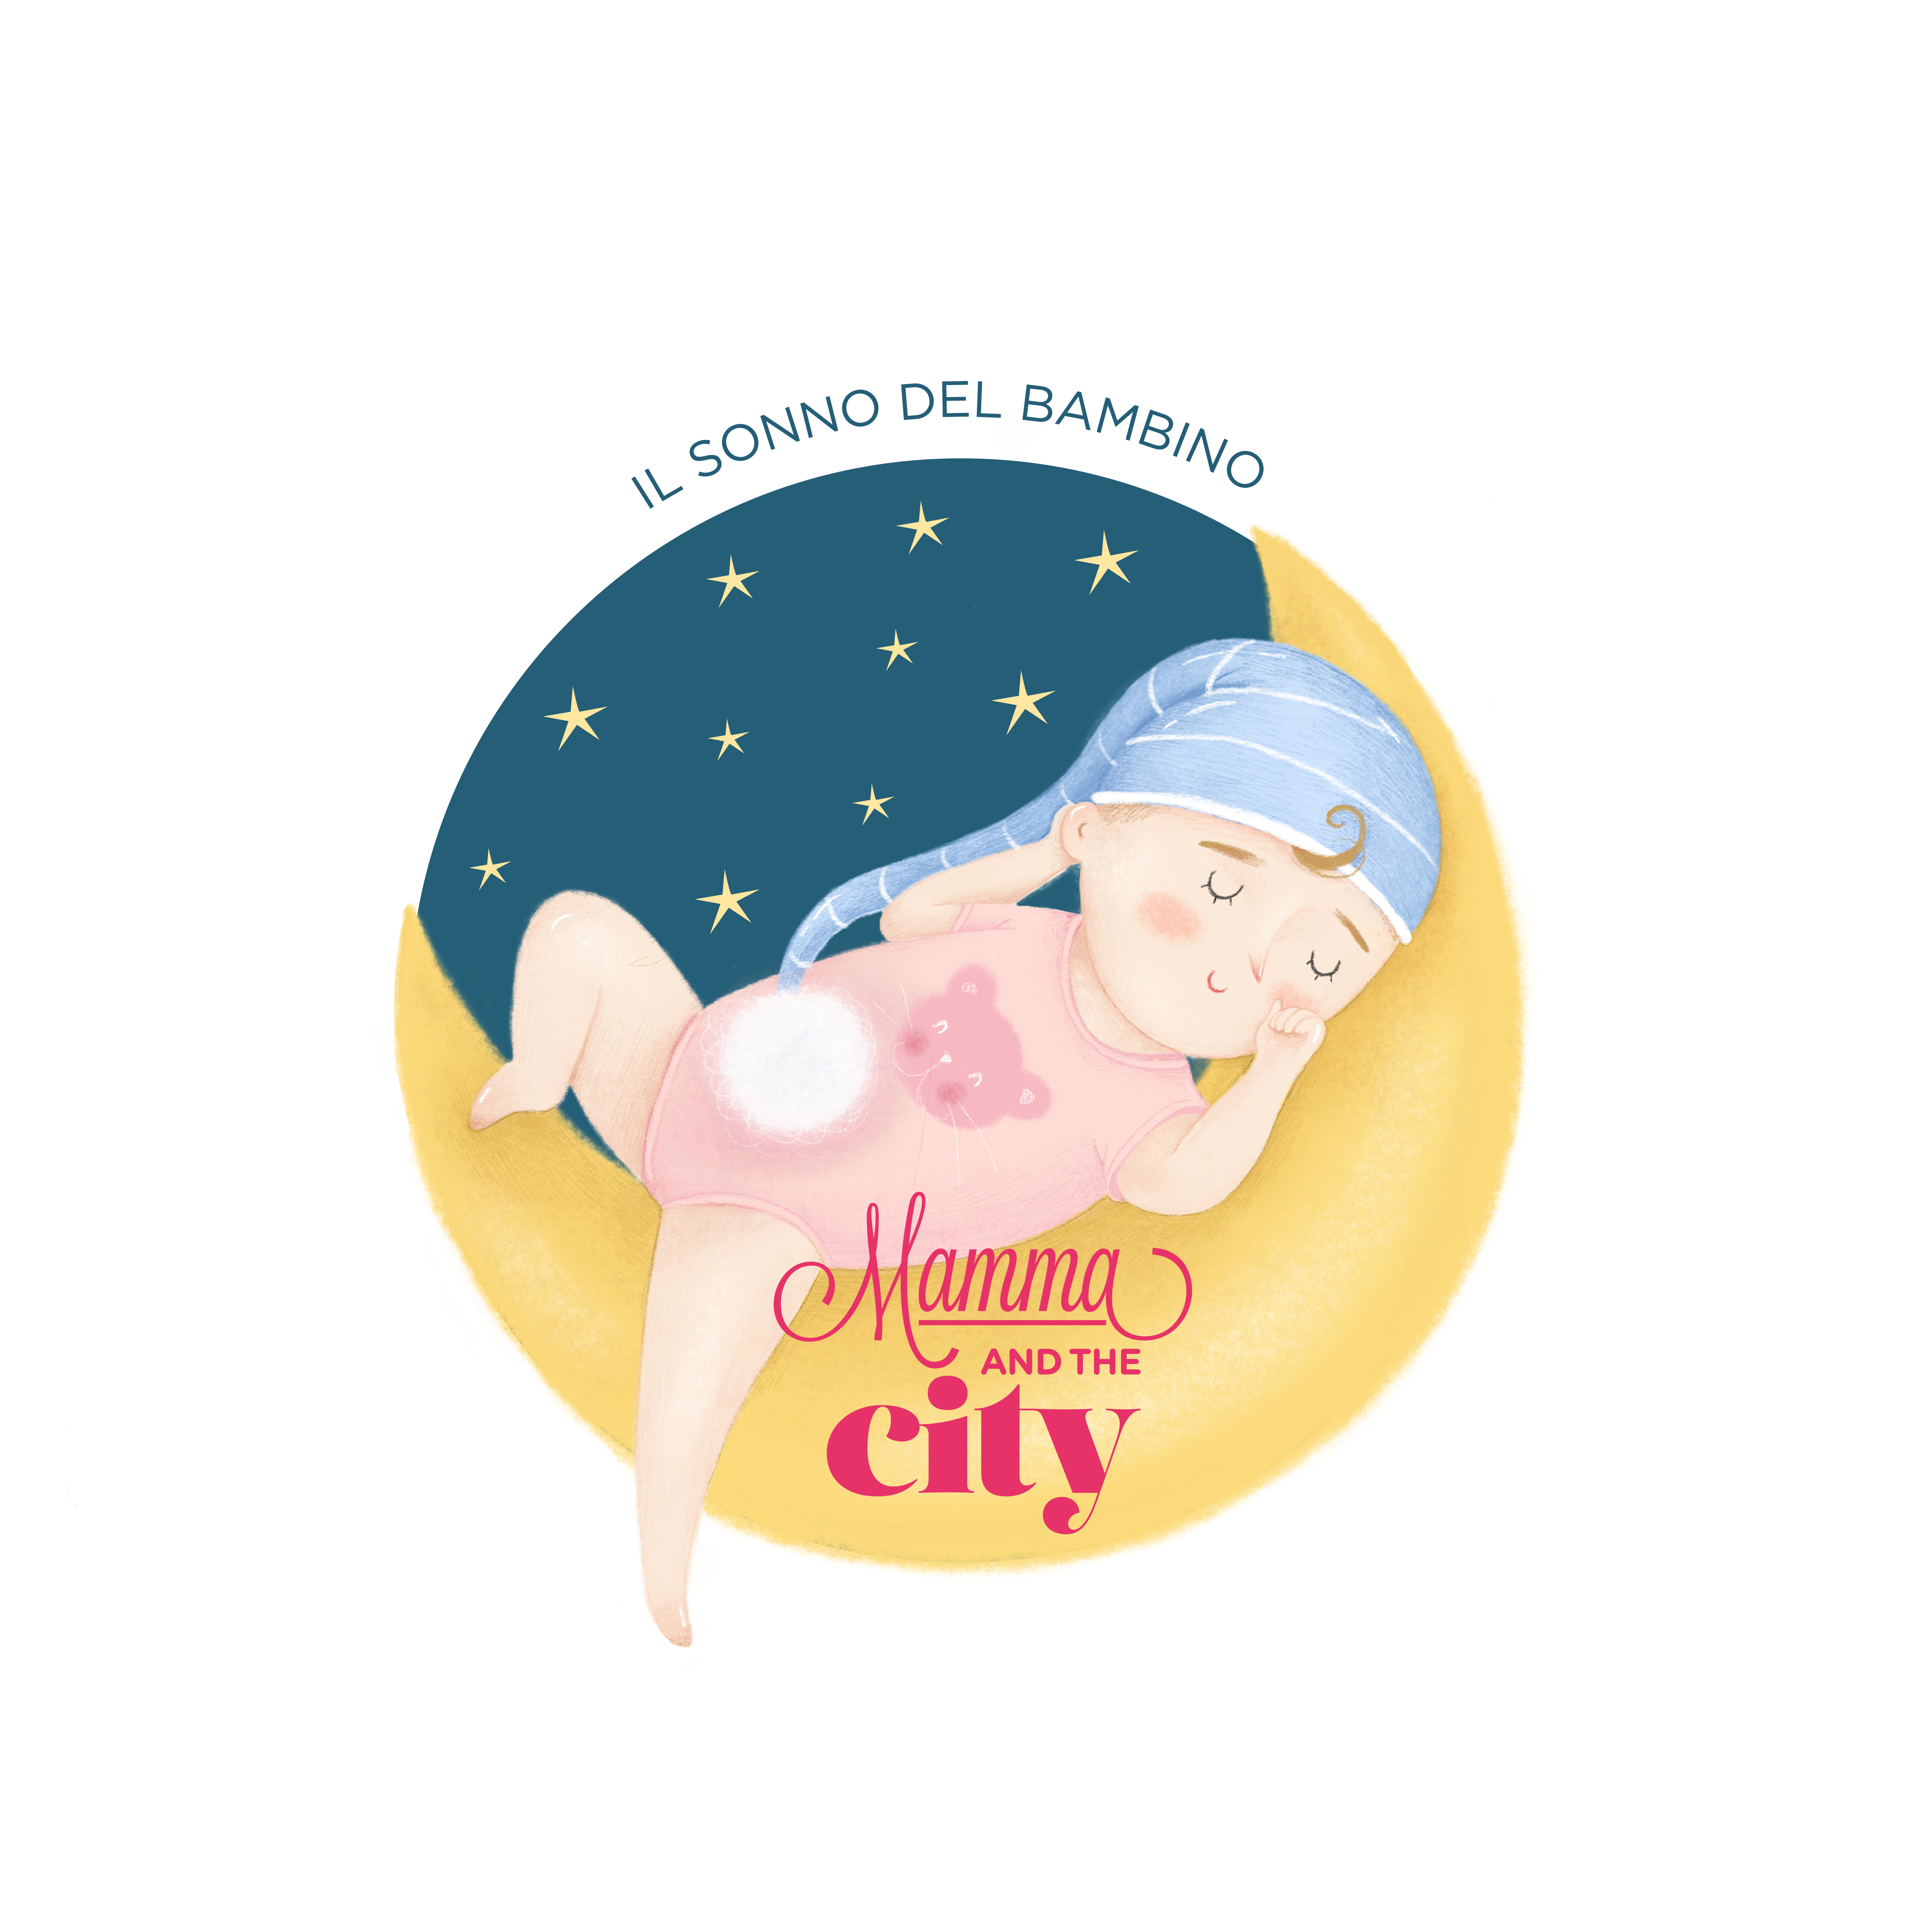 mamma and the city – il sonno del bambino